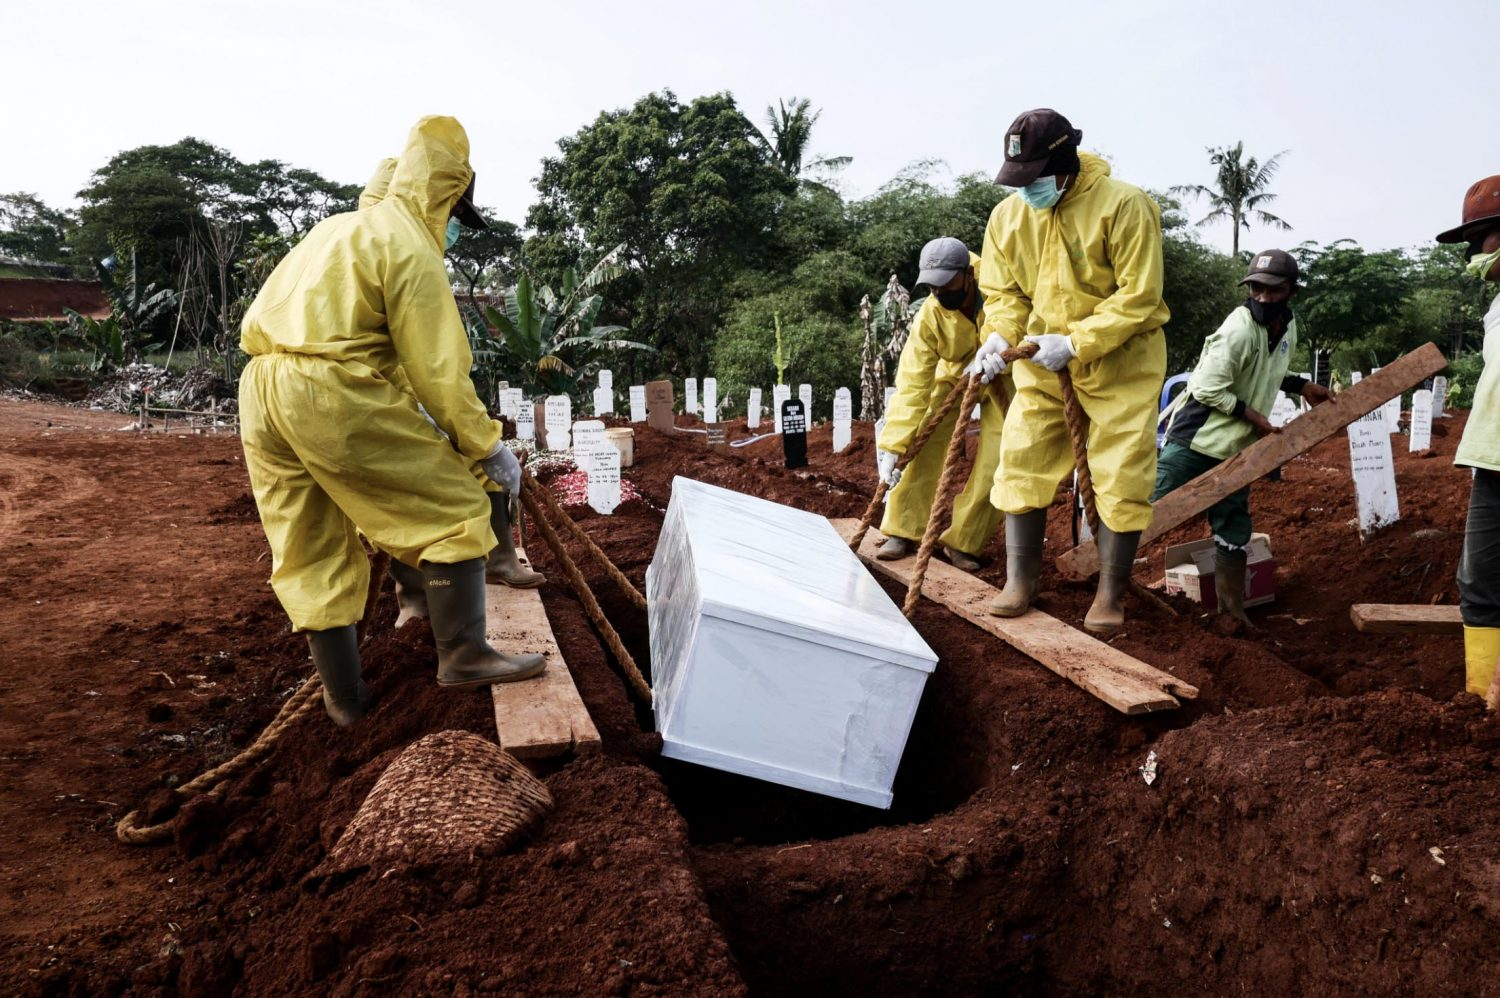 Local Authorities Order Anti-Maskers To Dig Graves For COVID-19 Victims In Java, Indonesia